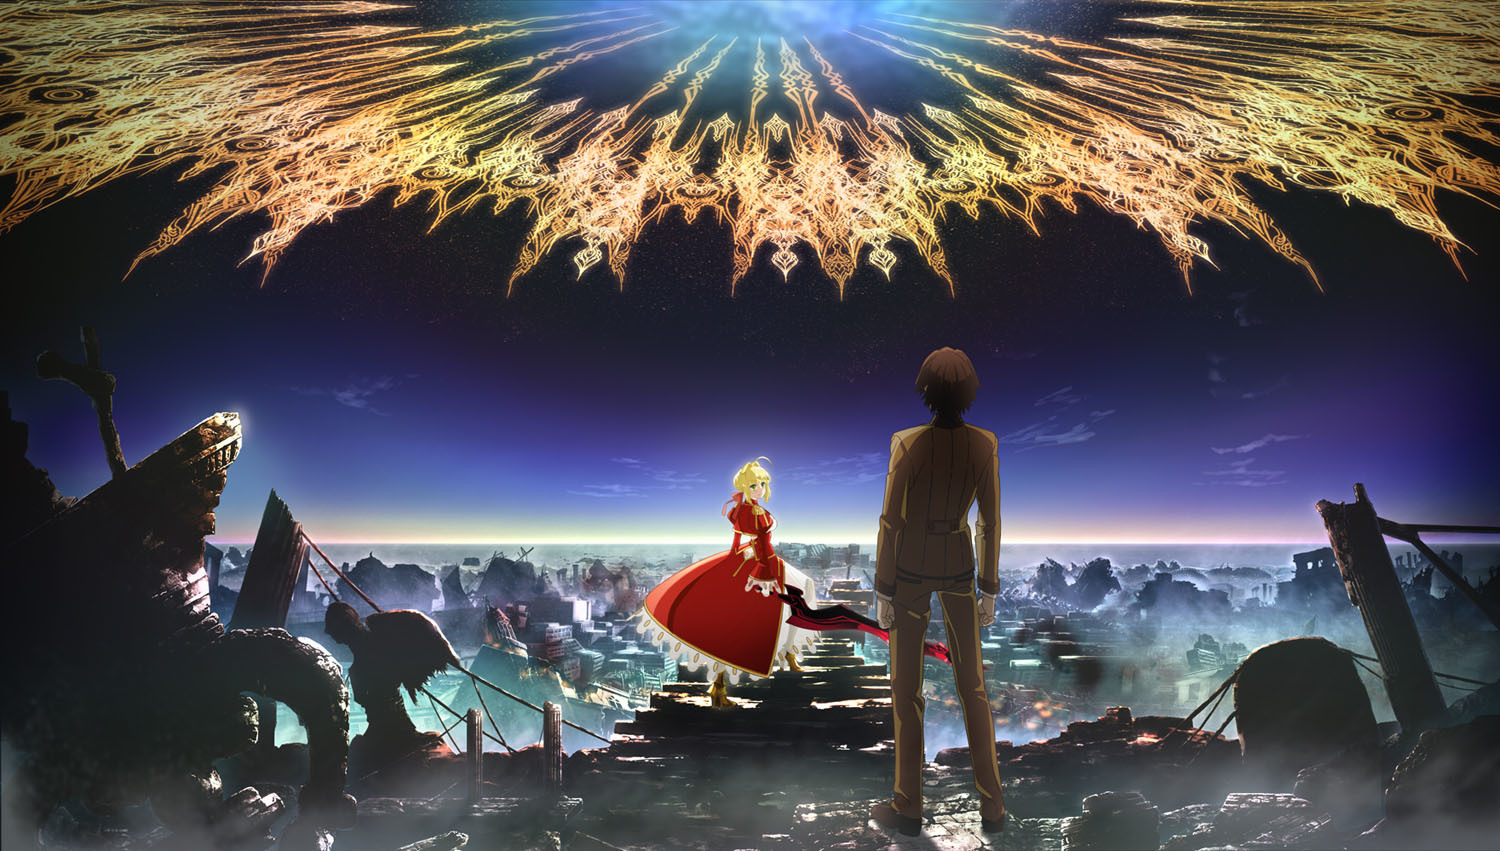 『Fate/EXTRA Last Encore』 © TYPE-MOON/Marvelous, Aniplex, Notes, SHAFT